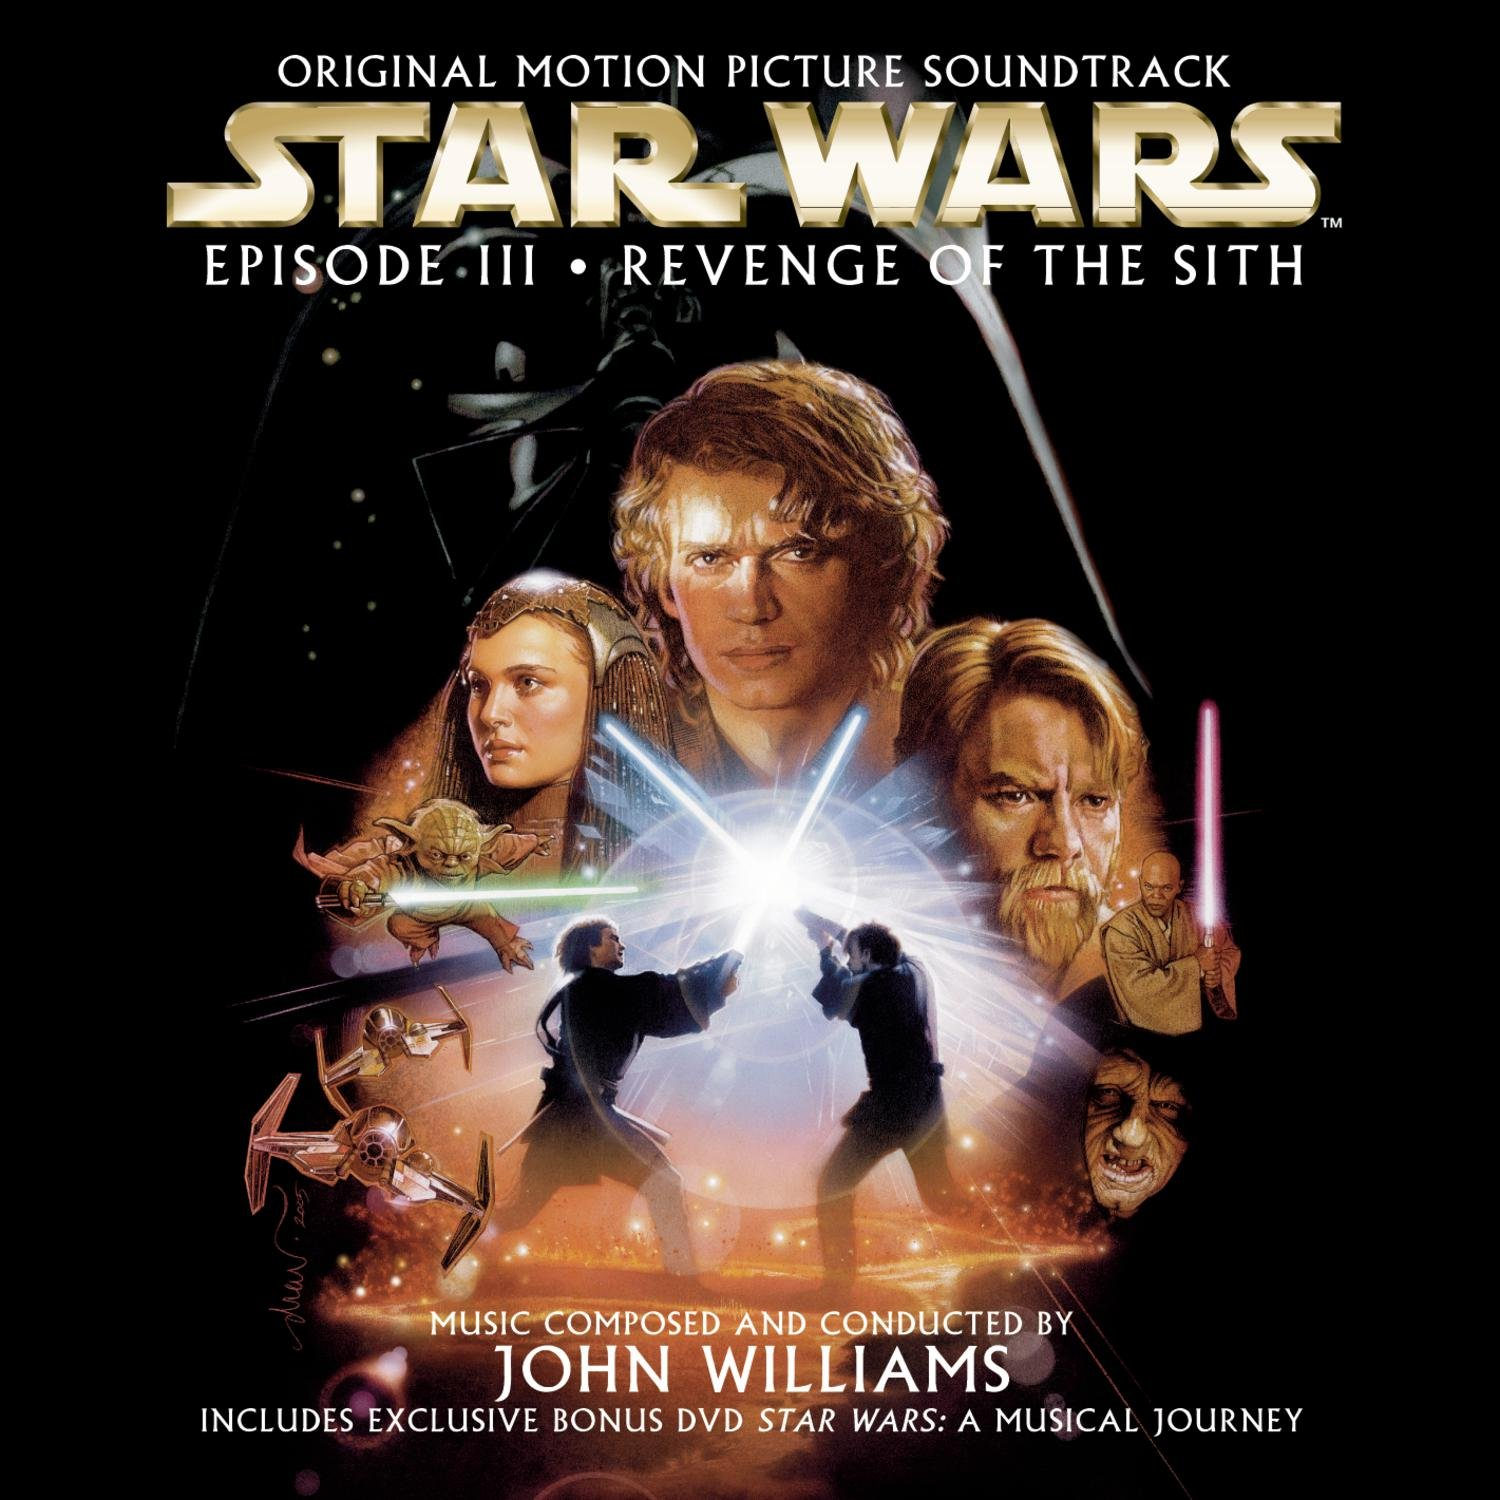 Star Wars Episode III: Revenge of the Sith Original Motion Picture Soundtrack (Record)